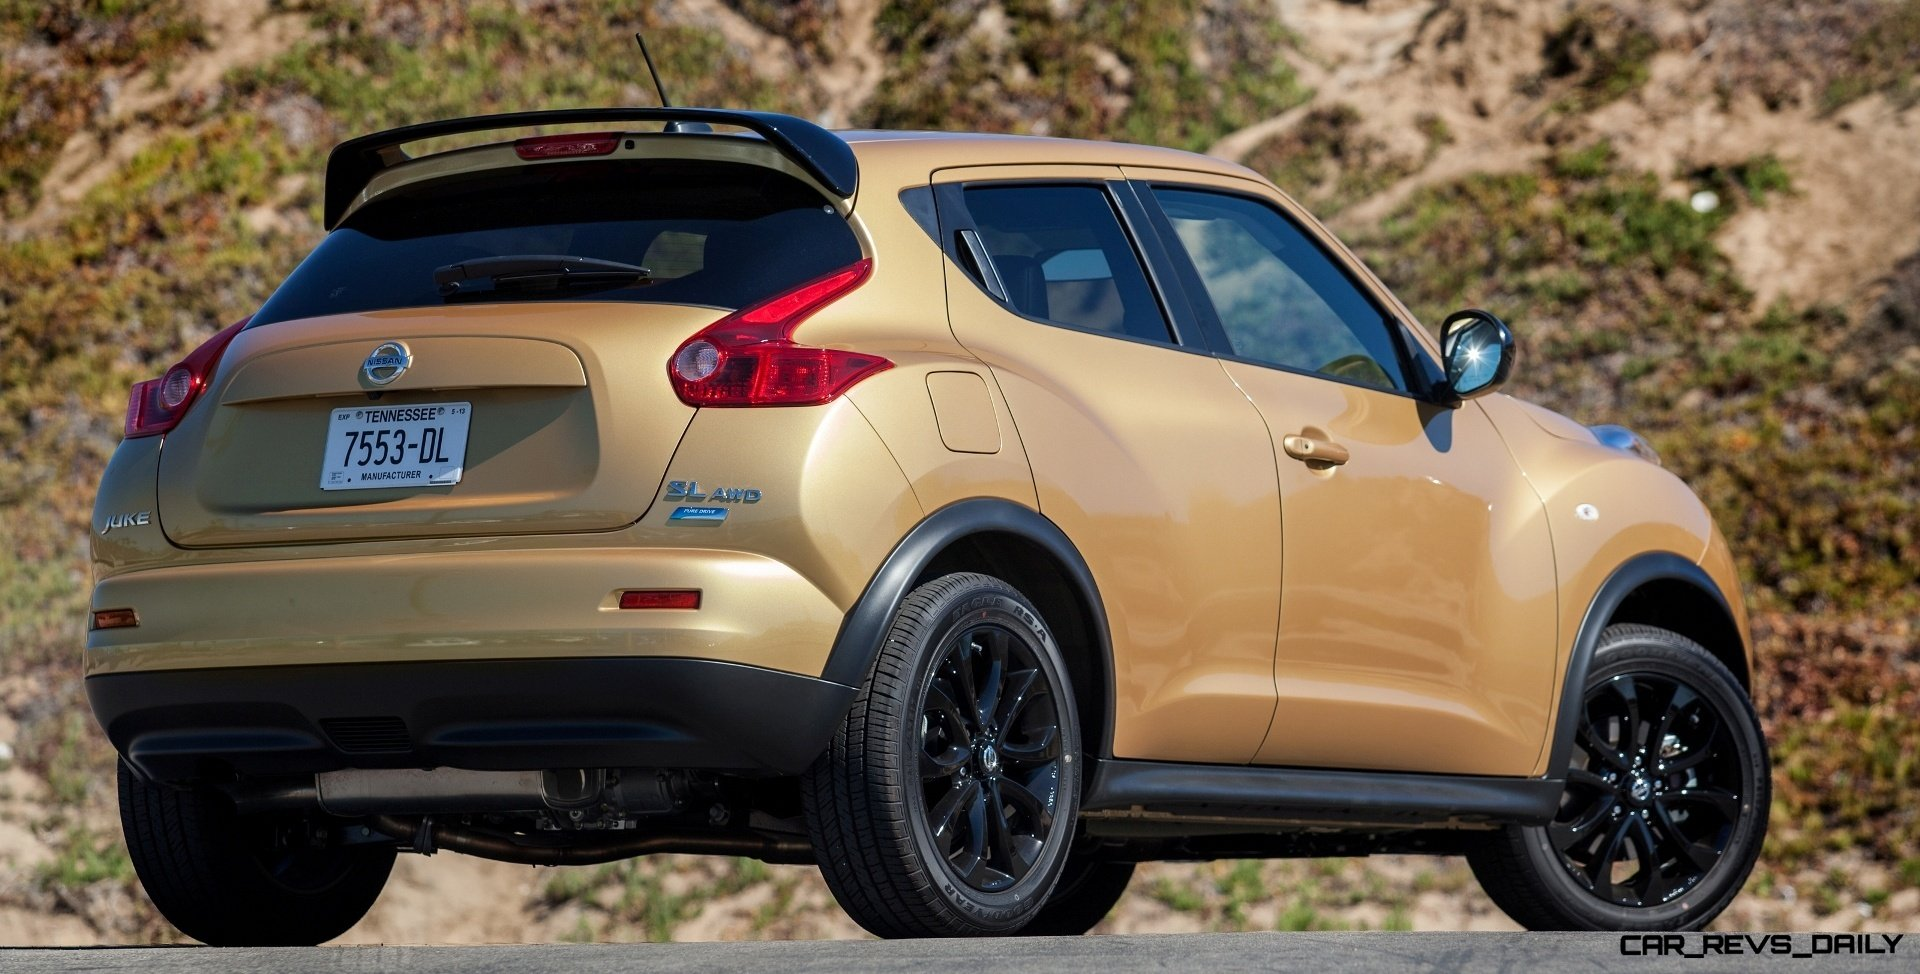 188hp turbo standard 2014 nissan juke midnight edition 6 sp what was that discovery in the latest new for2014 paint colors like this triple black this is a car that looks and feels like it is worth at least 10000 vanachro Images